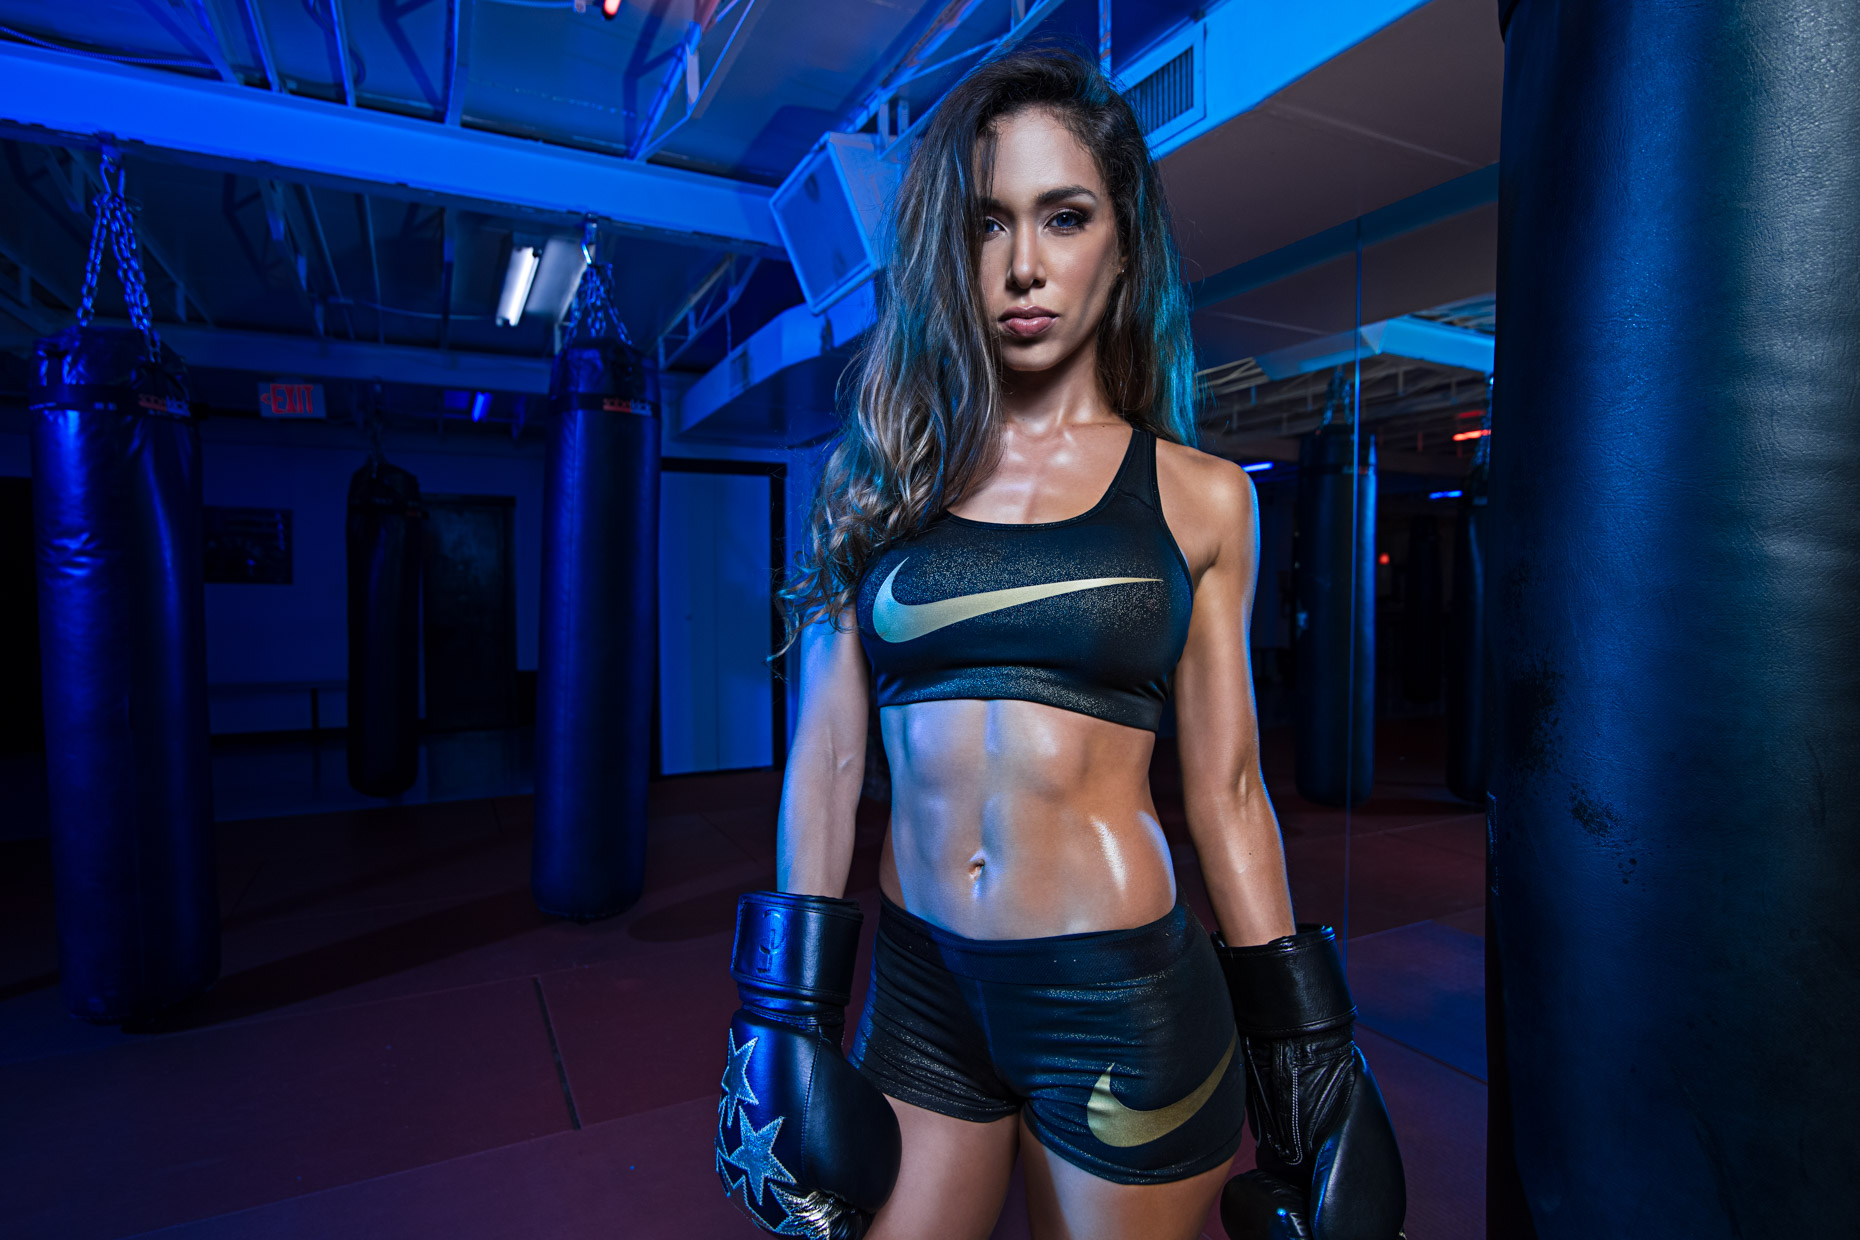 Shay Medal, fitness model and athlete poses in Nike workout apparel for this fitness photoshoot